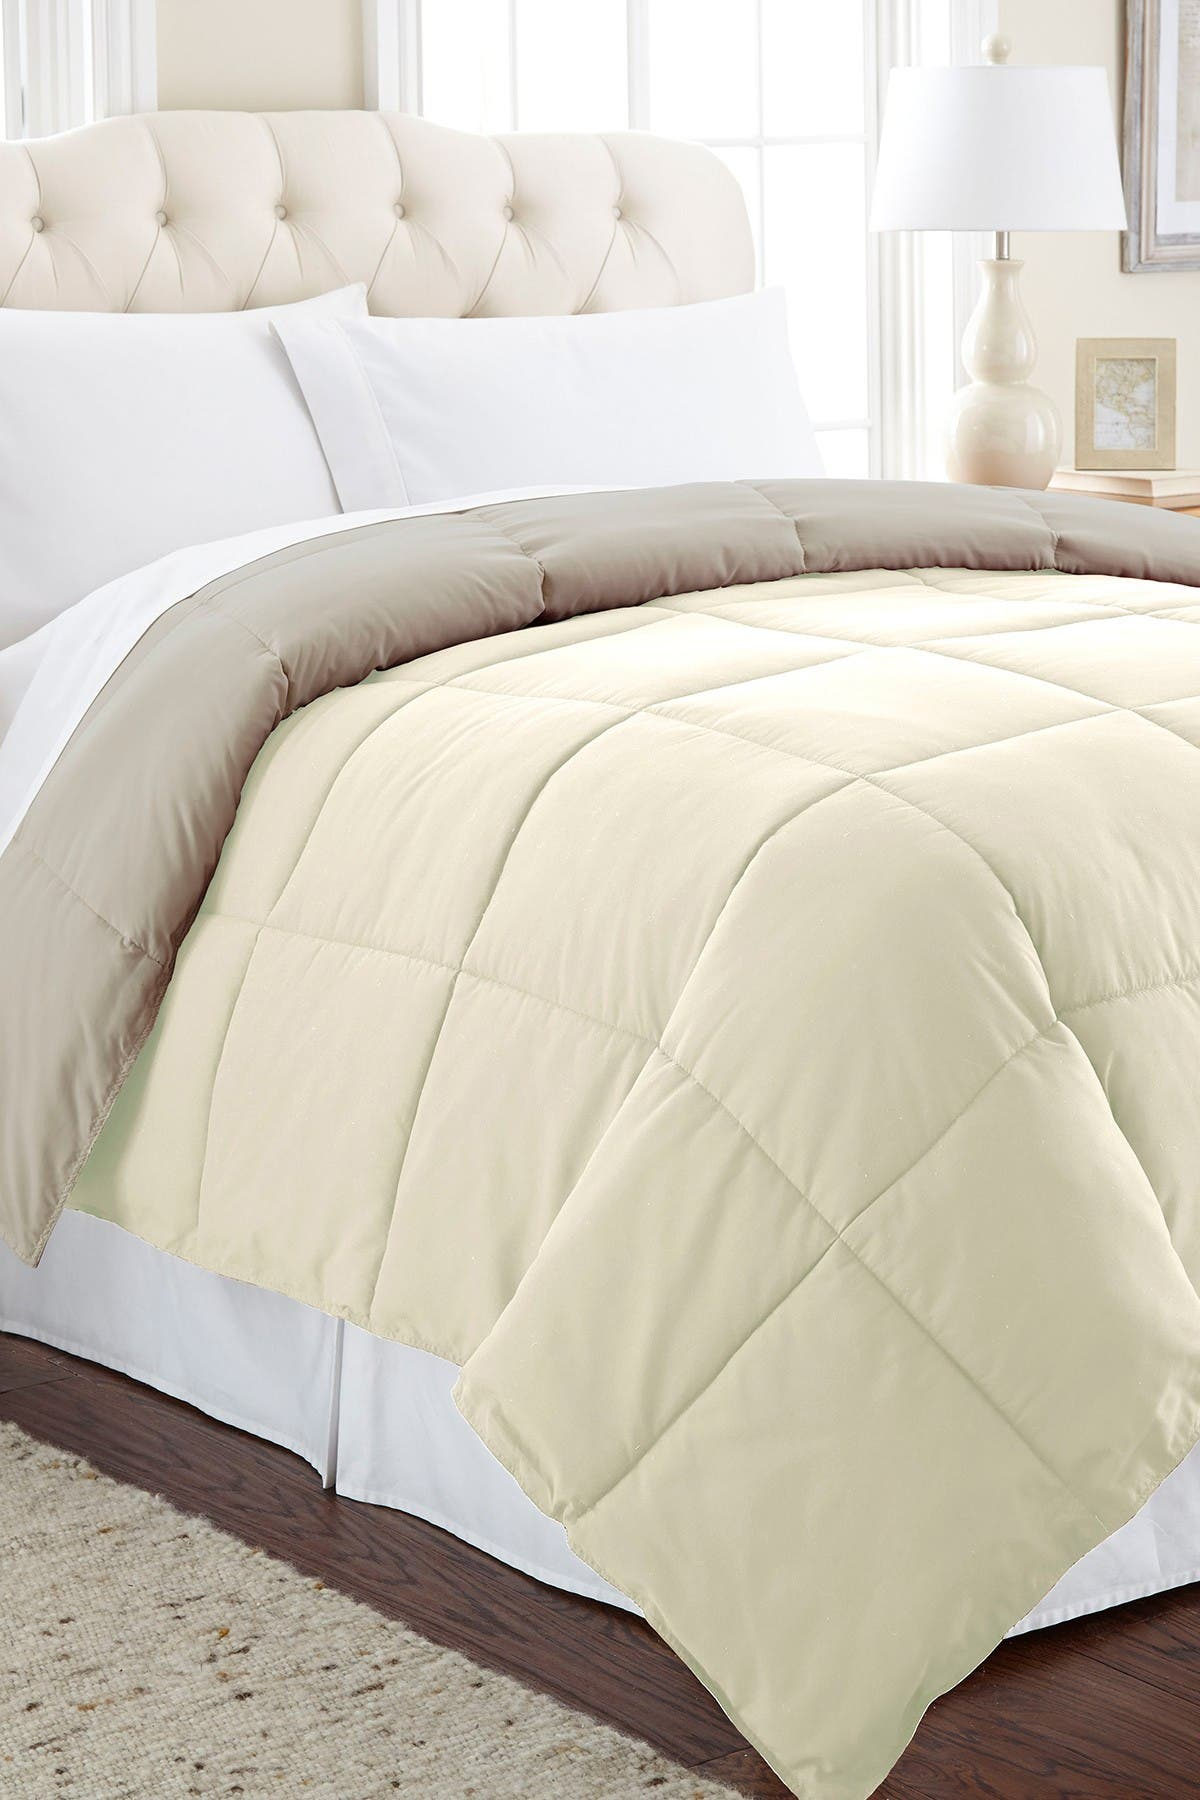 Image of Modern Threads Down Alternative Reversible Twin Comforter - Ivory/Atmosphere